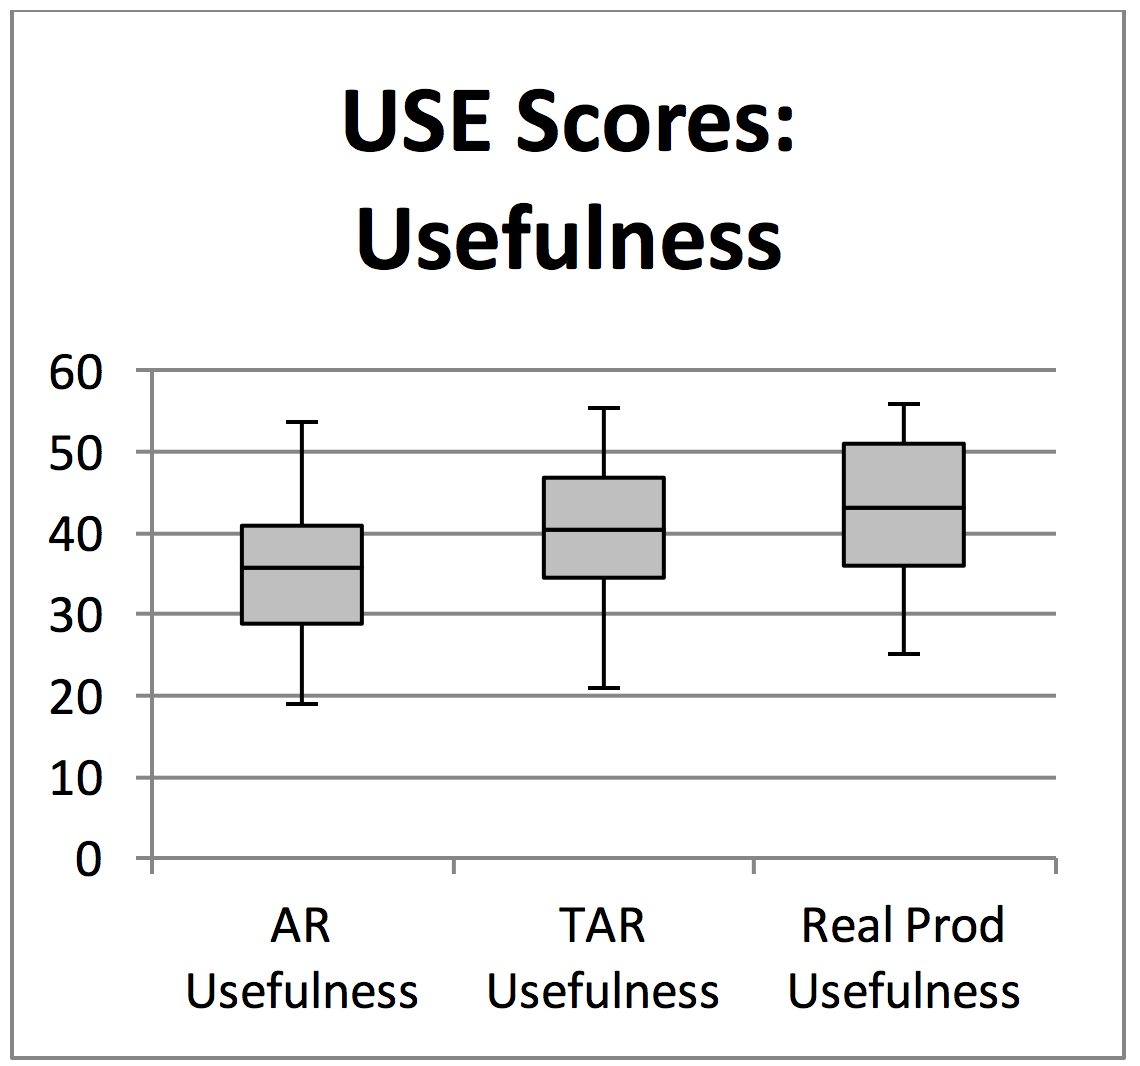 Scores increase in the following order: AR total, TAR total, and real product total.